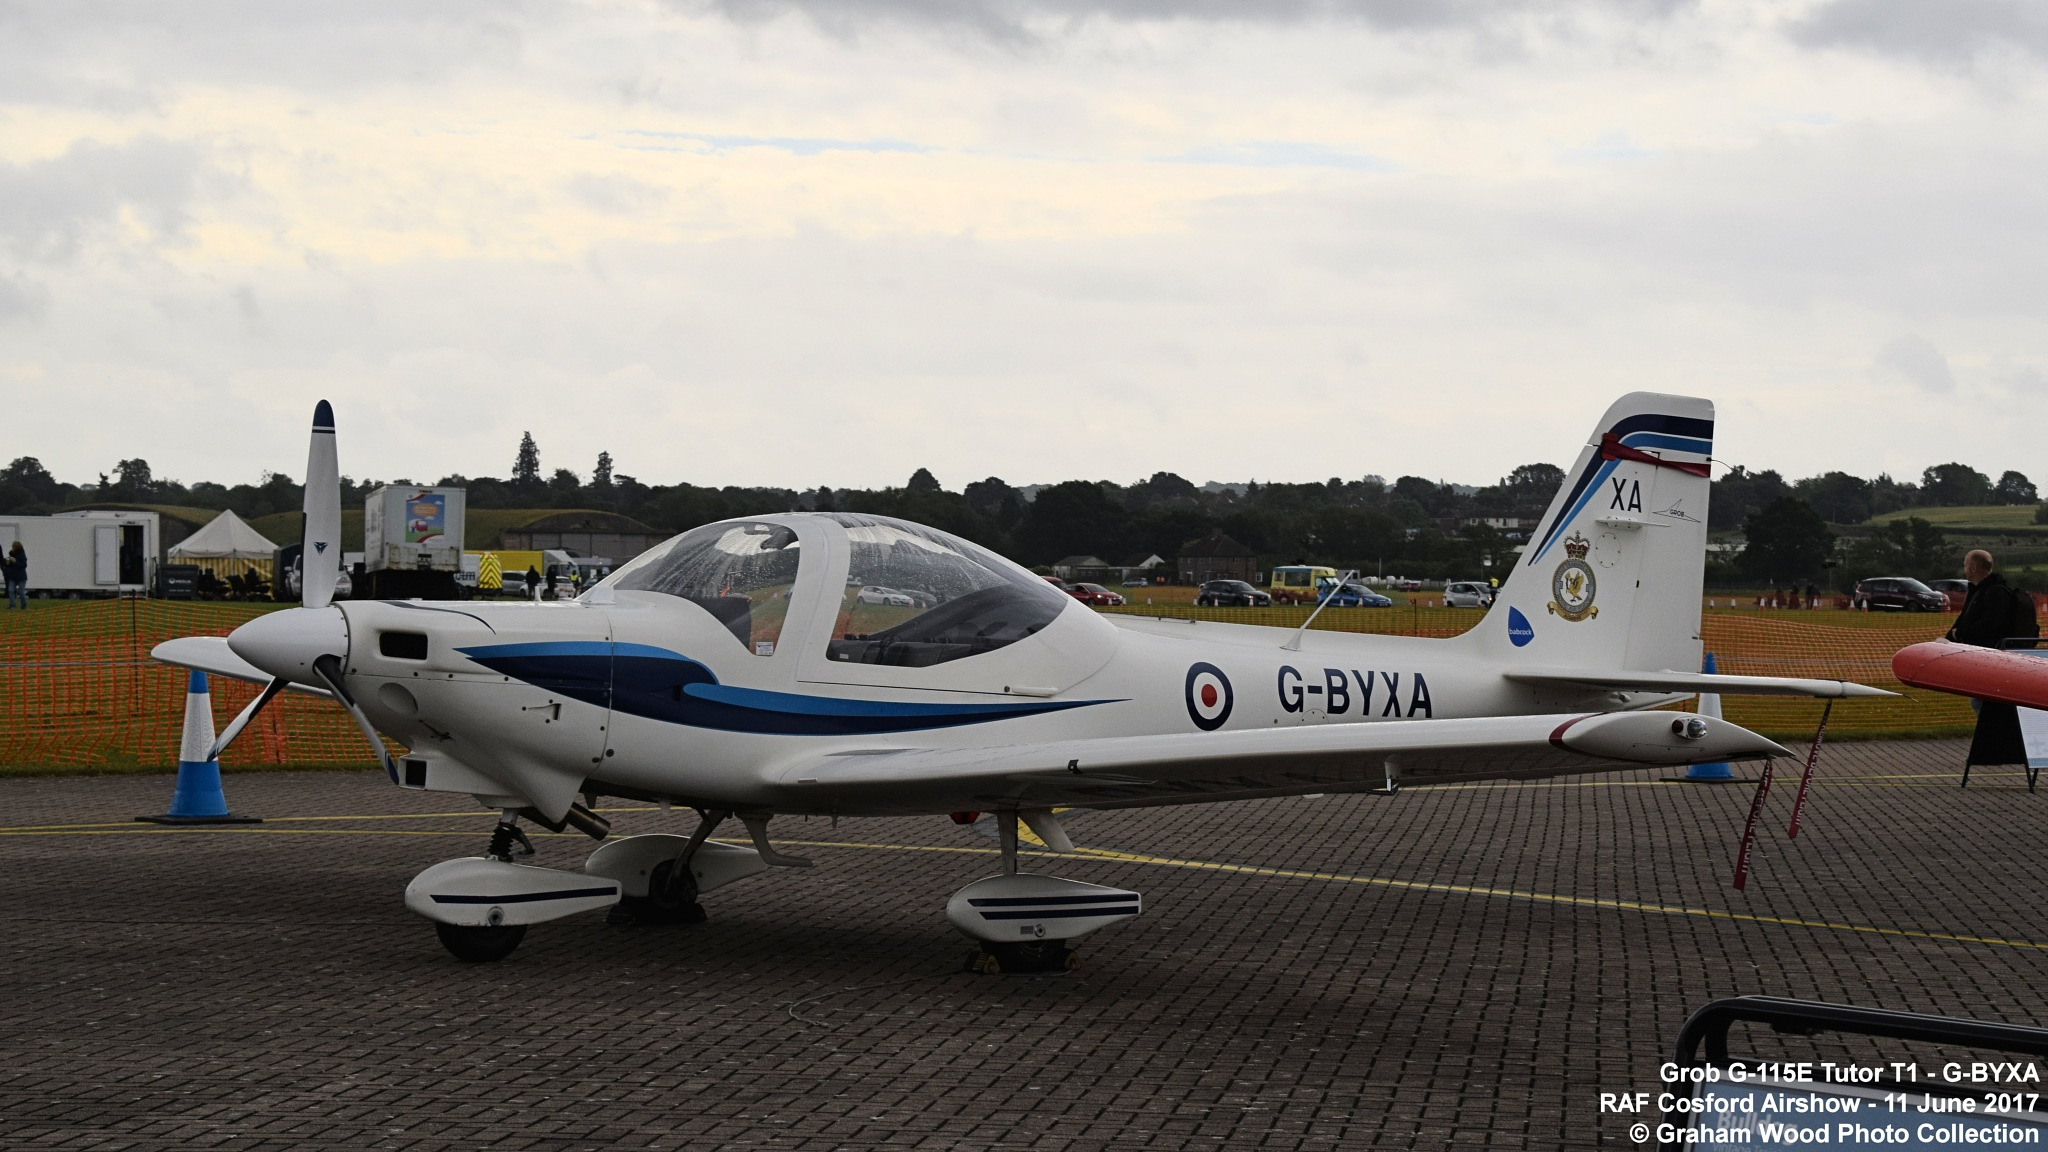 Grob G-115E Tutor T1 - G-BYXA by Graham Wood Photo Collection